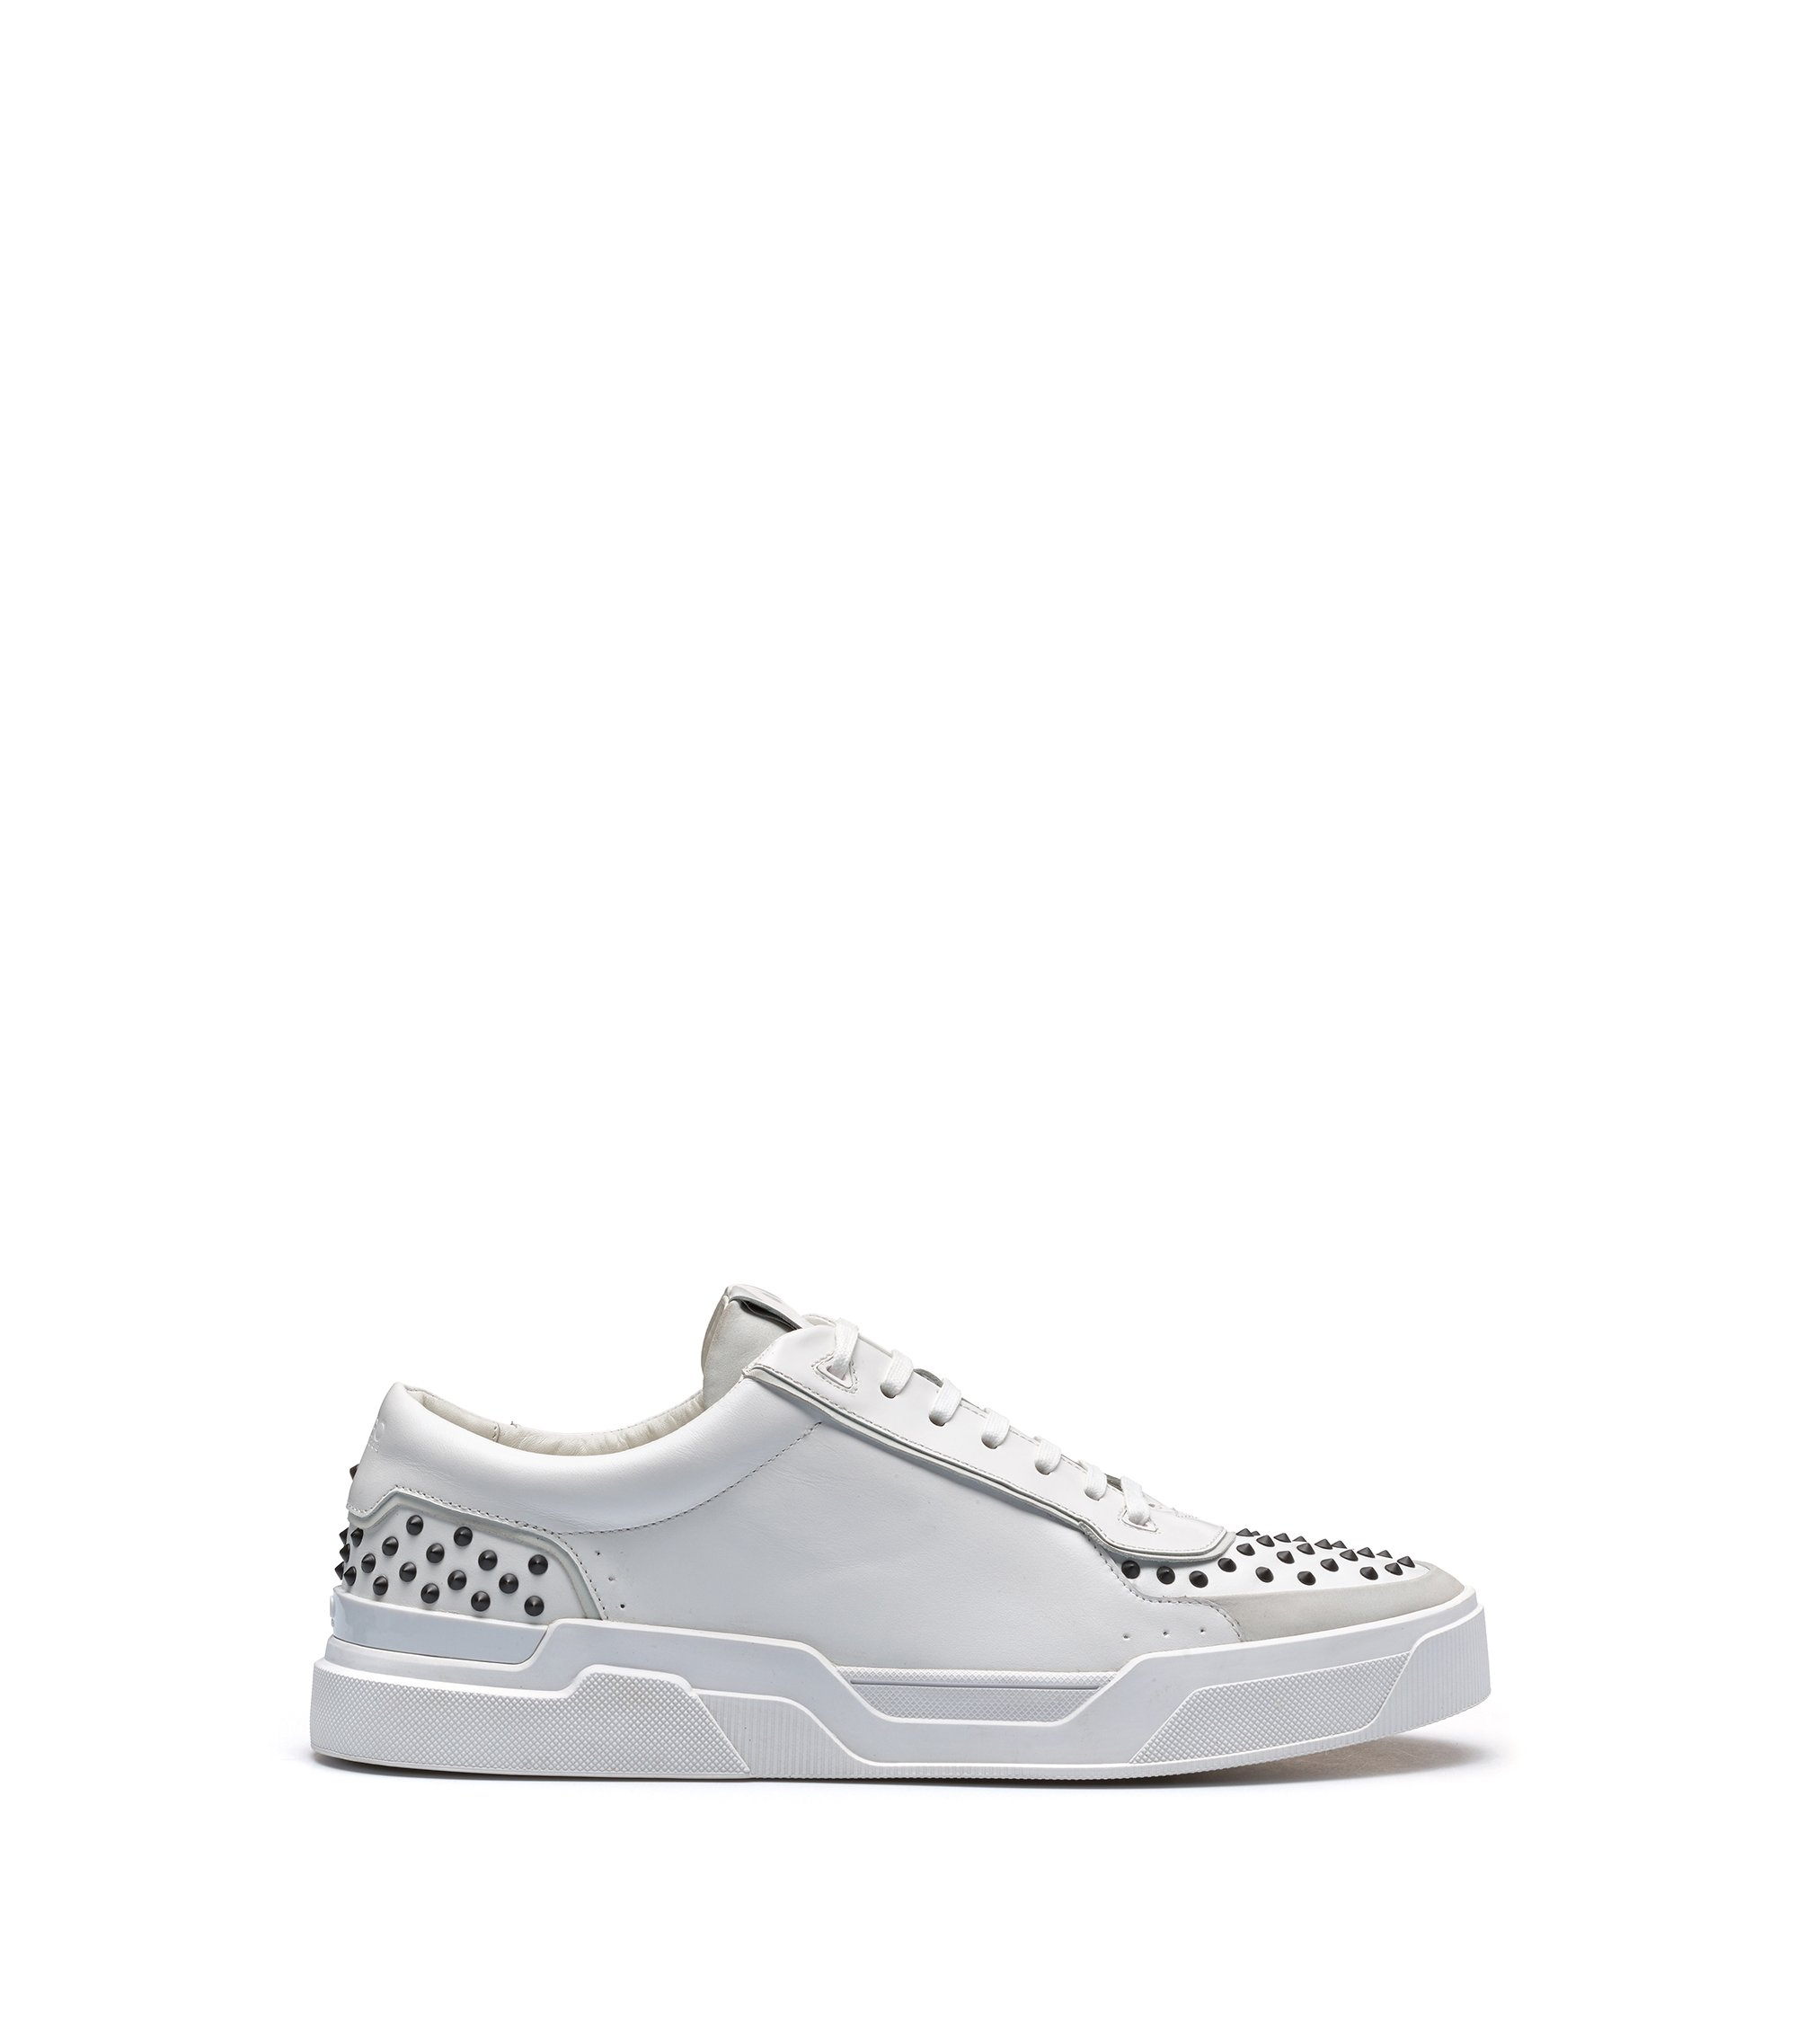 Sneakers in pelle di vitello con borchie decorative, Bianco